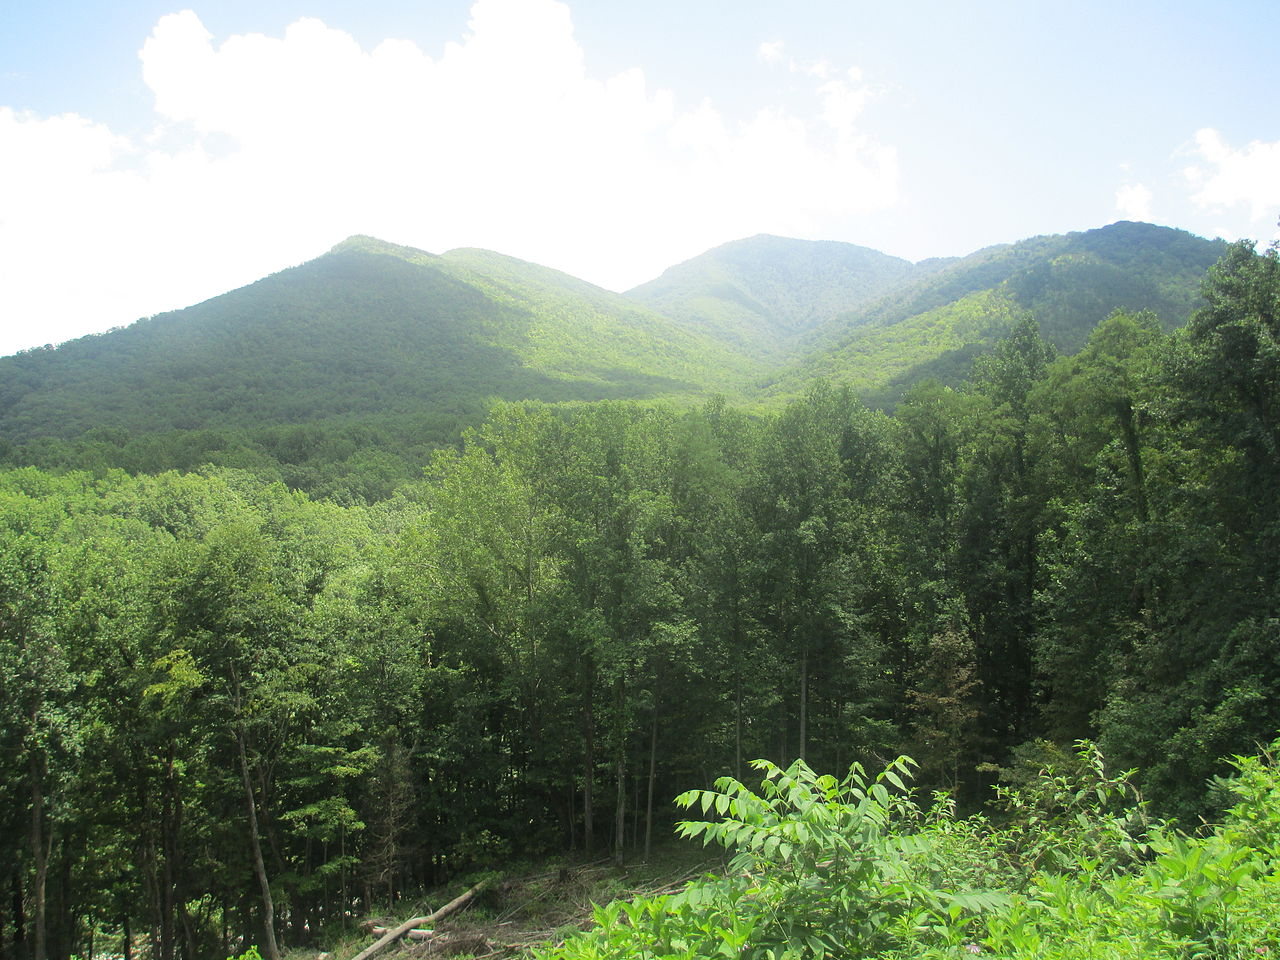 Hiking Trails National Park Smoky Mountain Golden Cabins